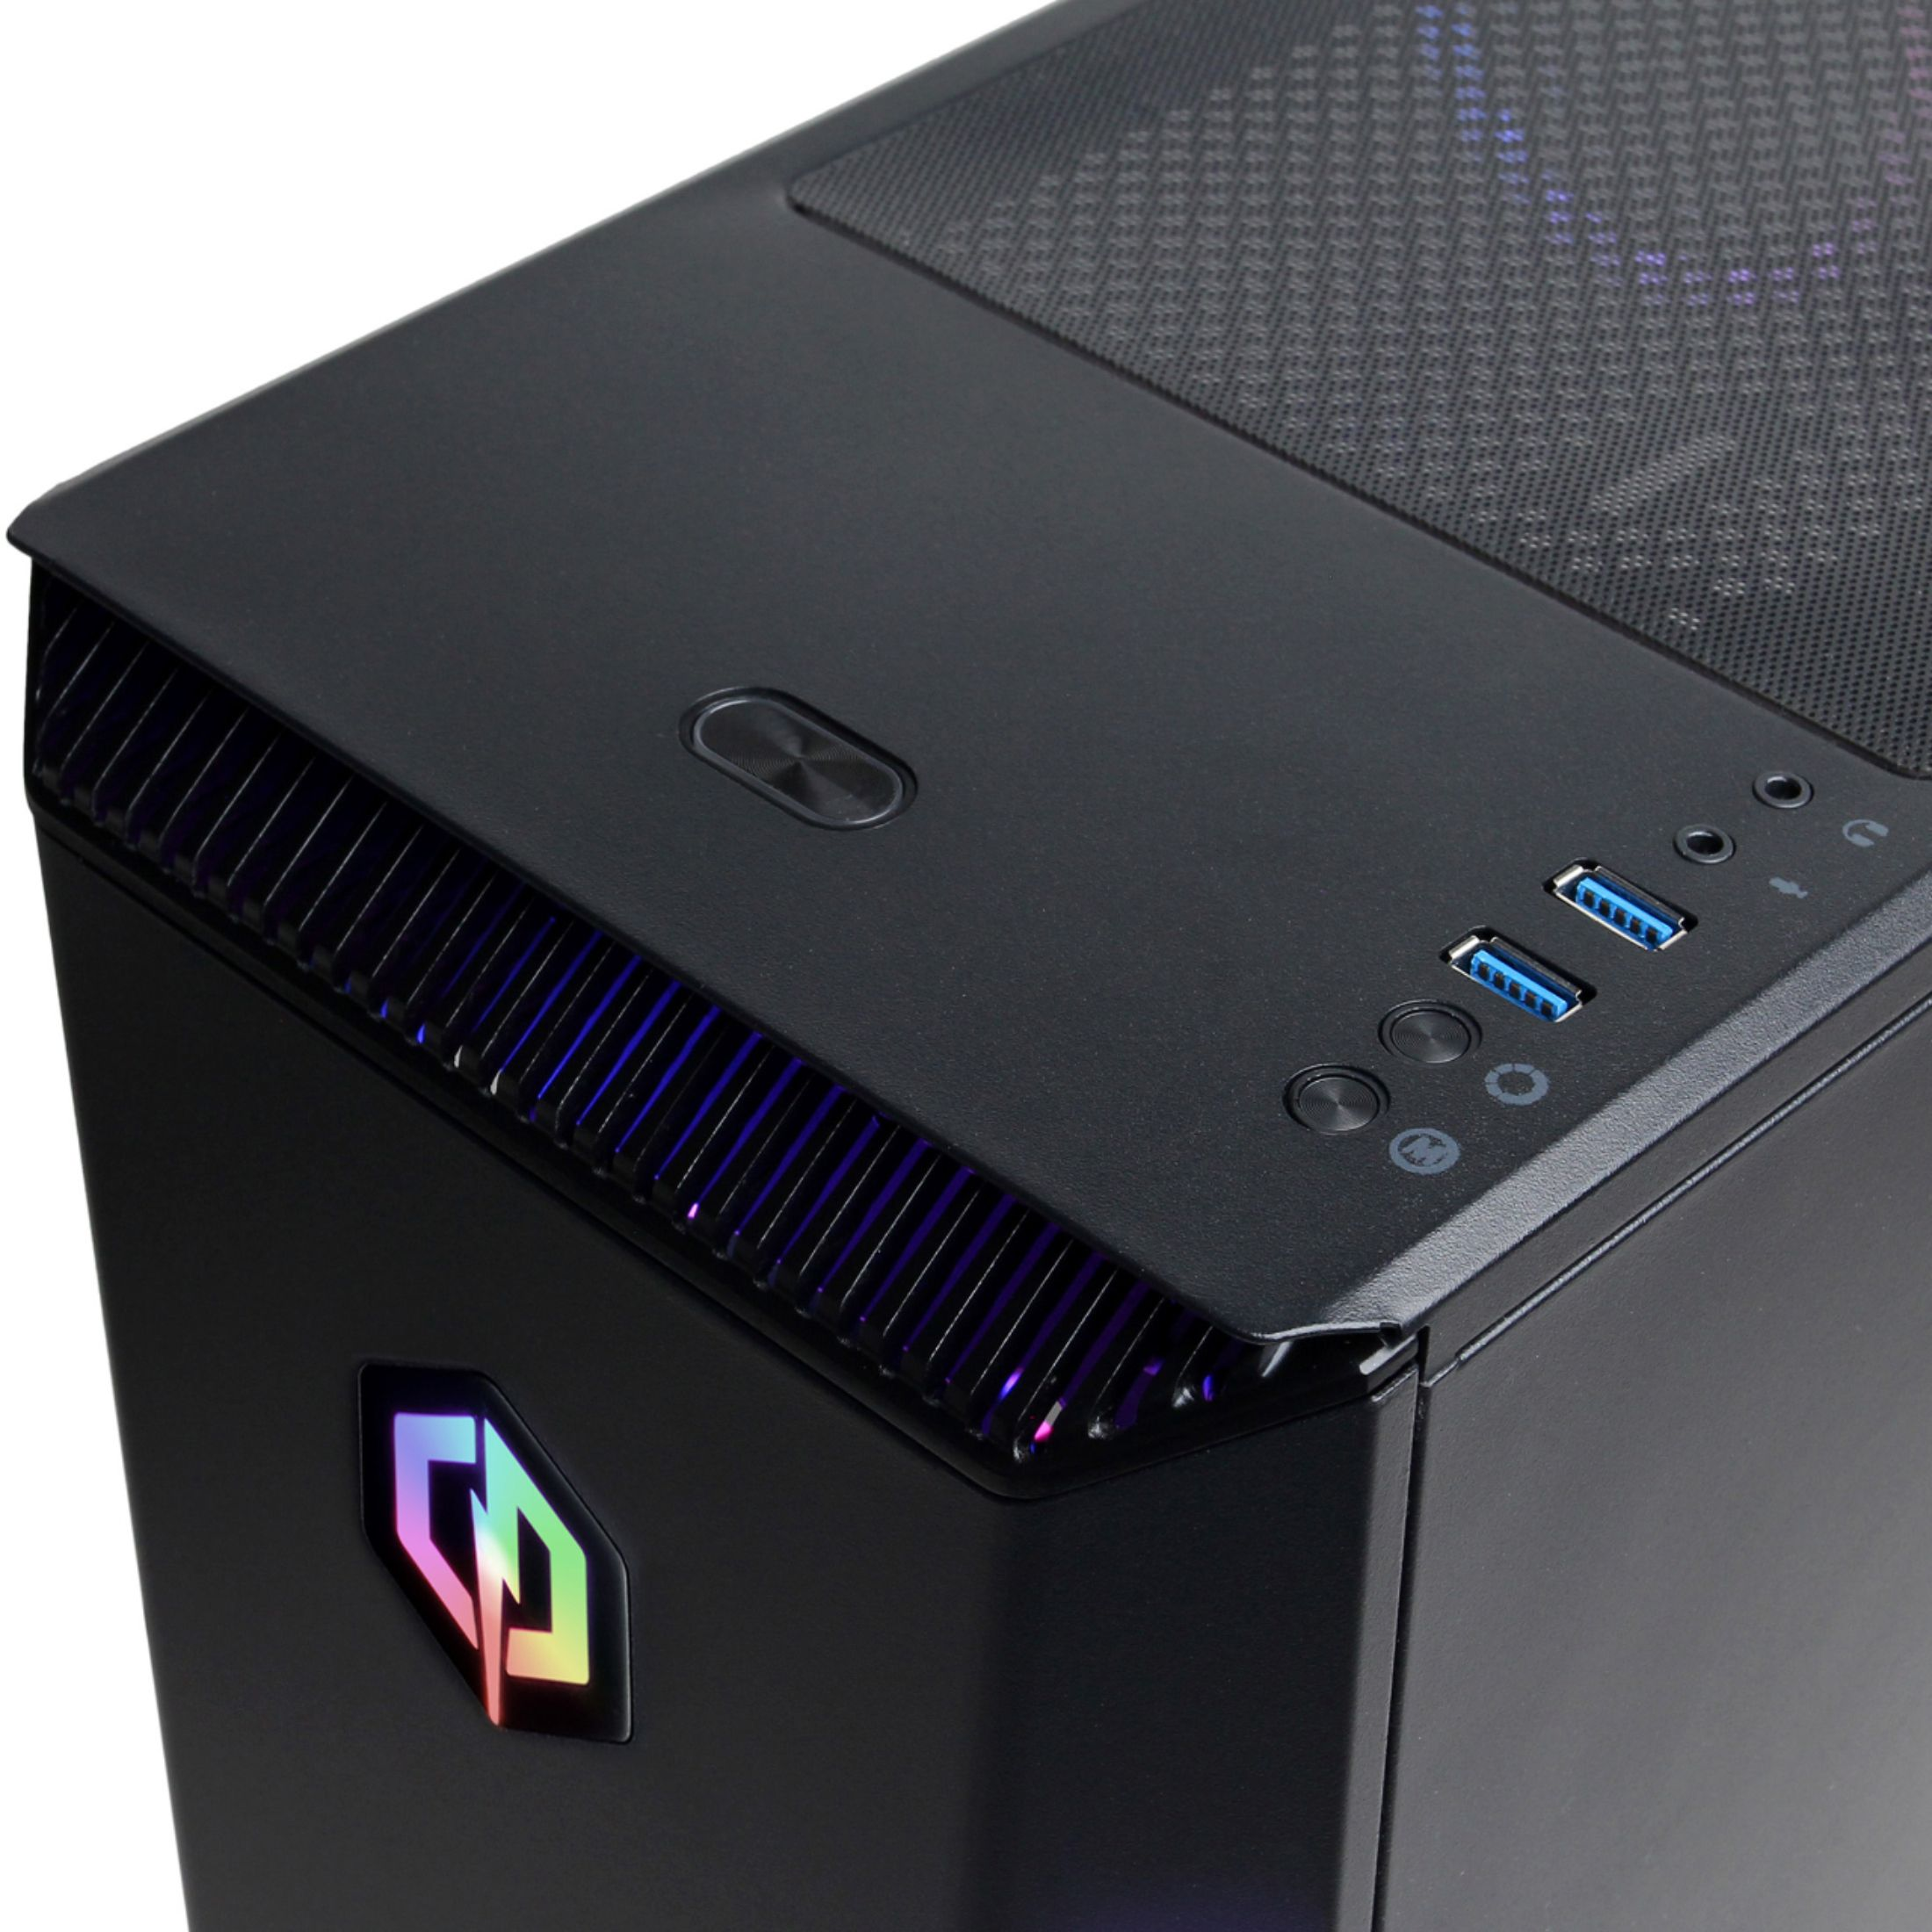 Alt View Zoom 14. CyberPowerPC - Gaming Desktop - AMD Ryzen 5 3600 - 8GB Memory - AMD Radeon RX 580 - 2TB HDD + 240GB SSD - Black.